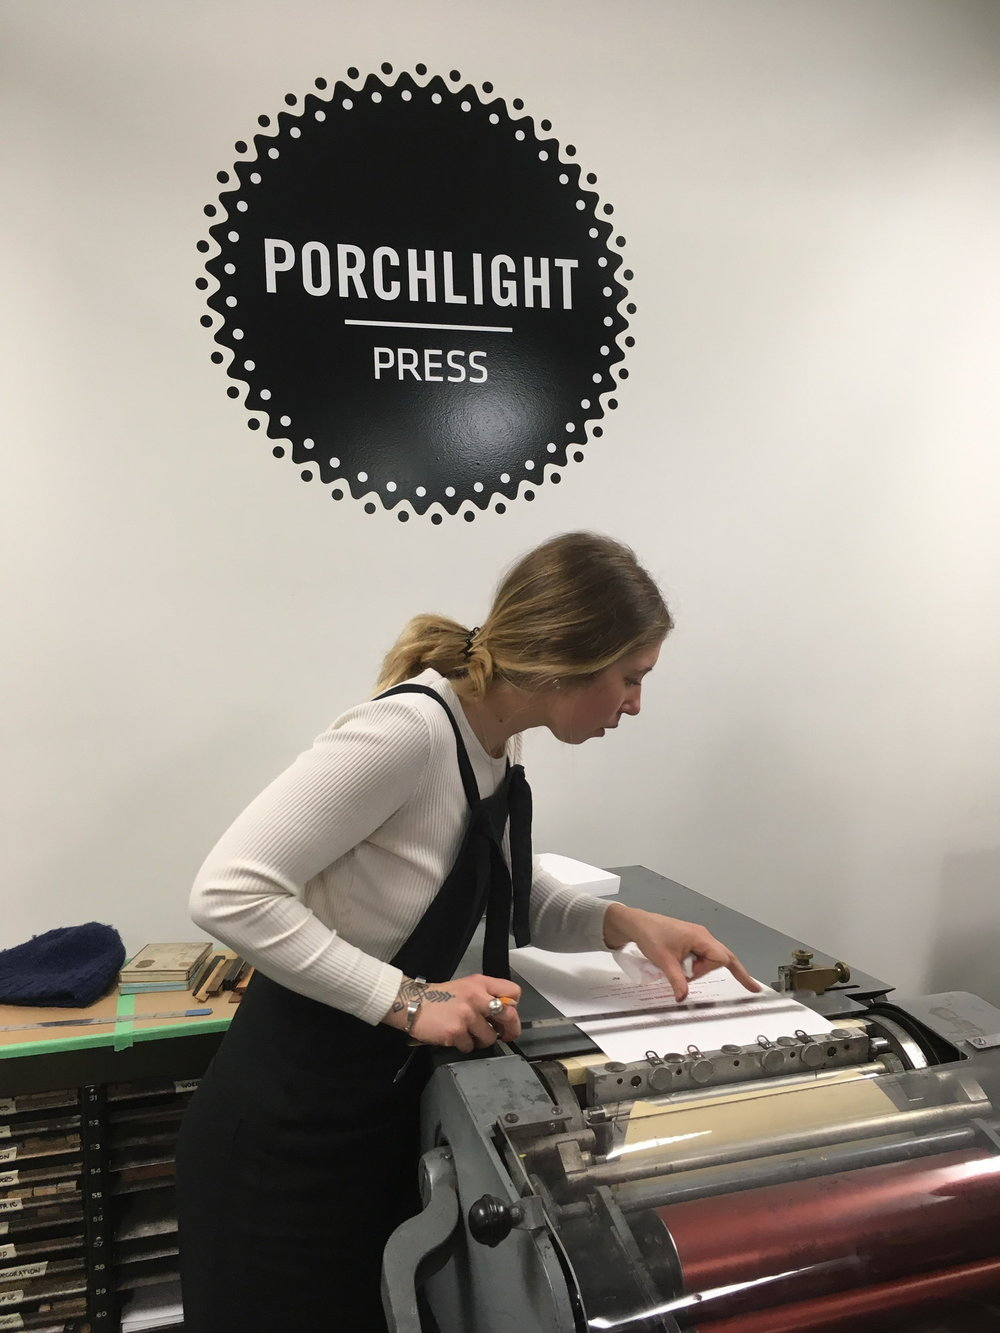 Annie Axtell demonstrates how to line up the paper